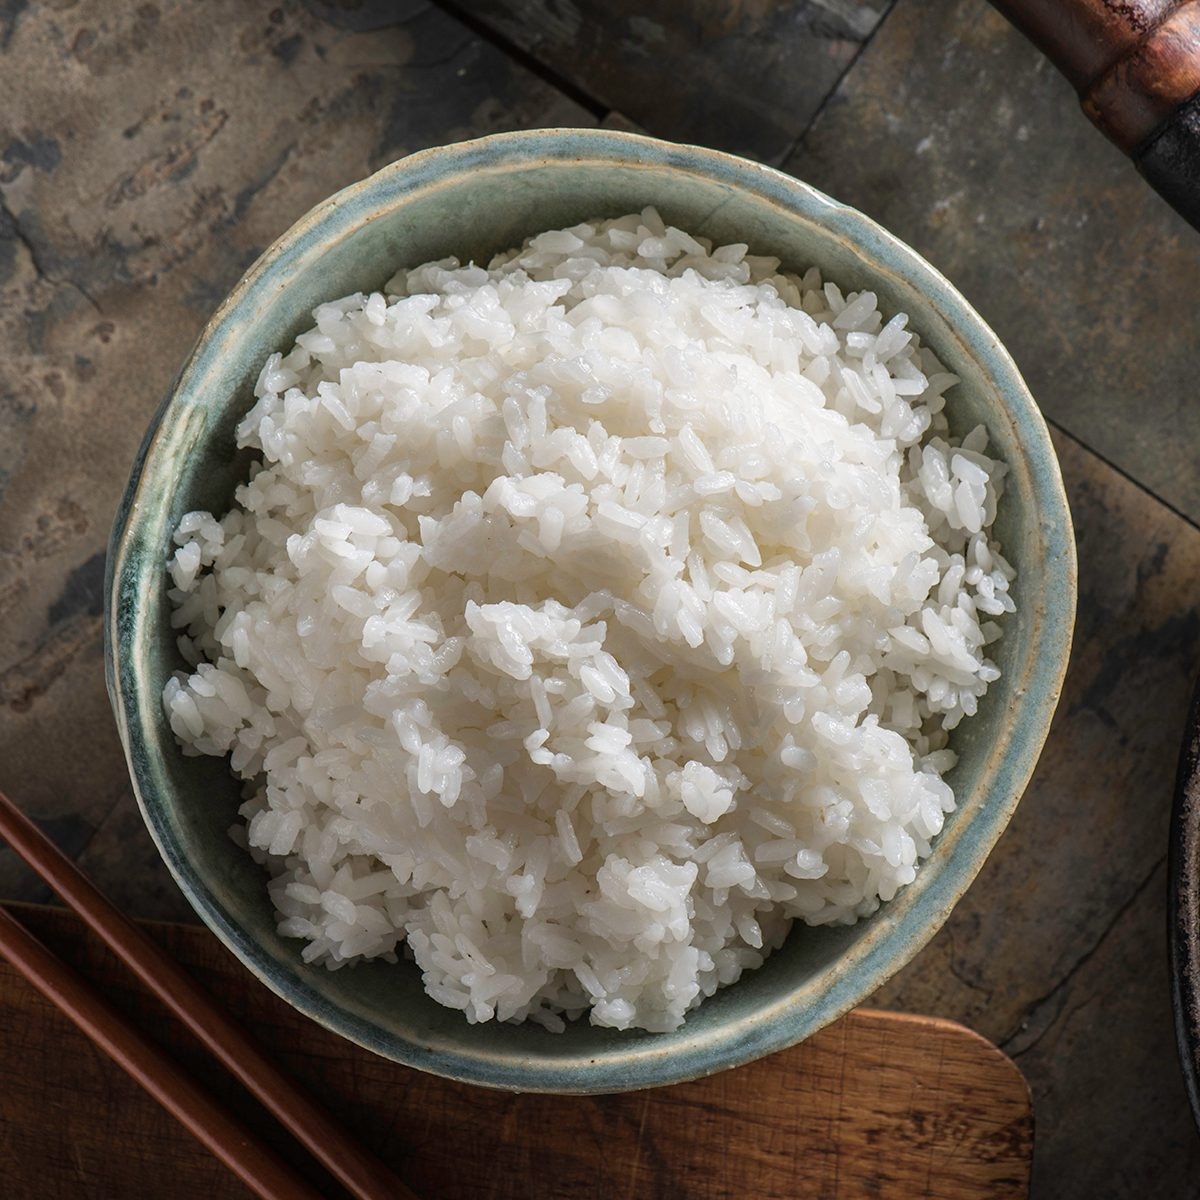 Steamed white rice in a bowl